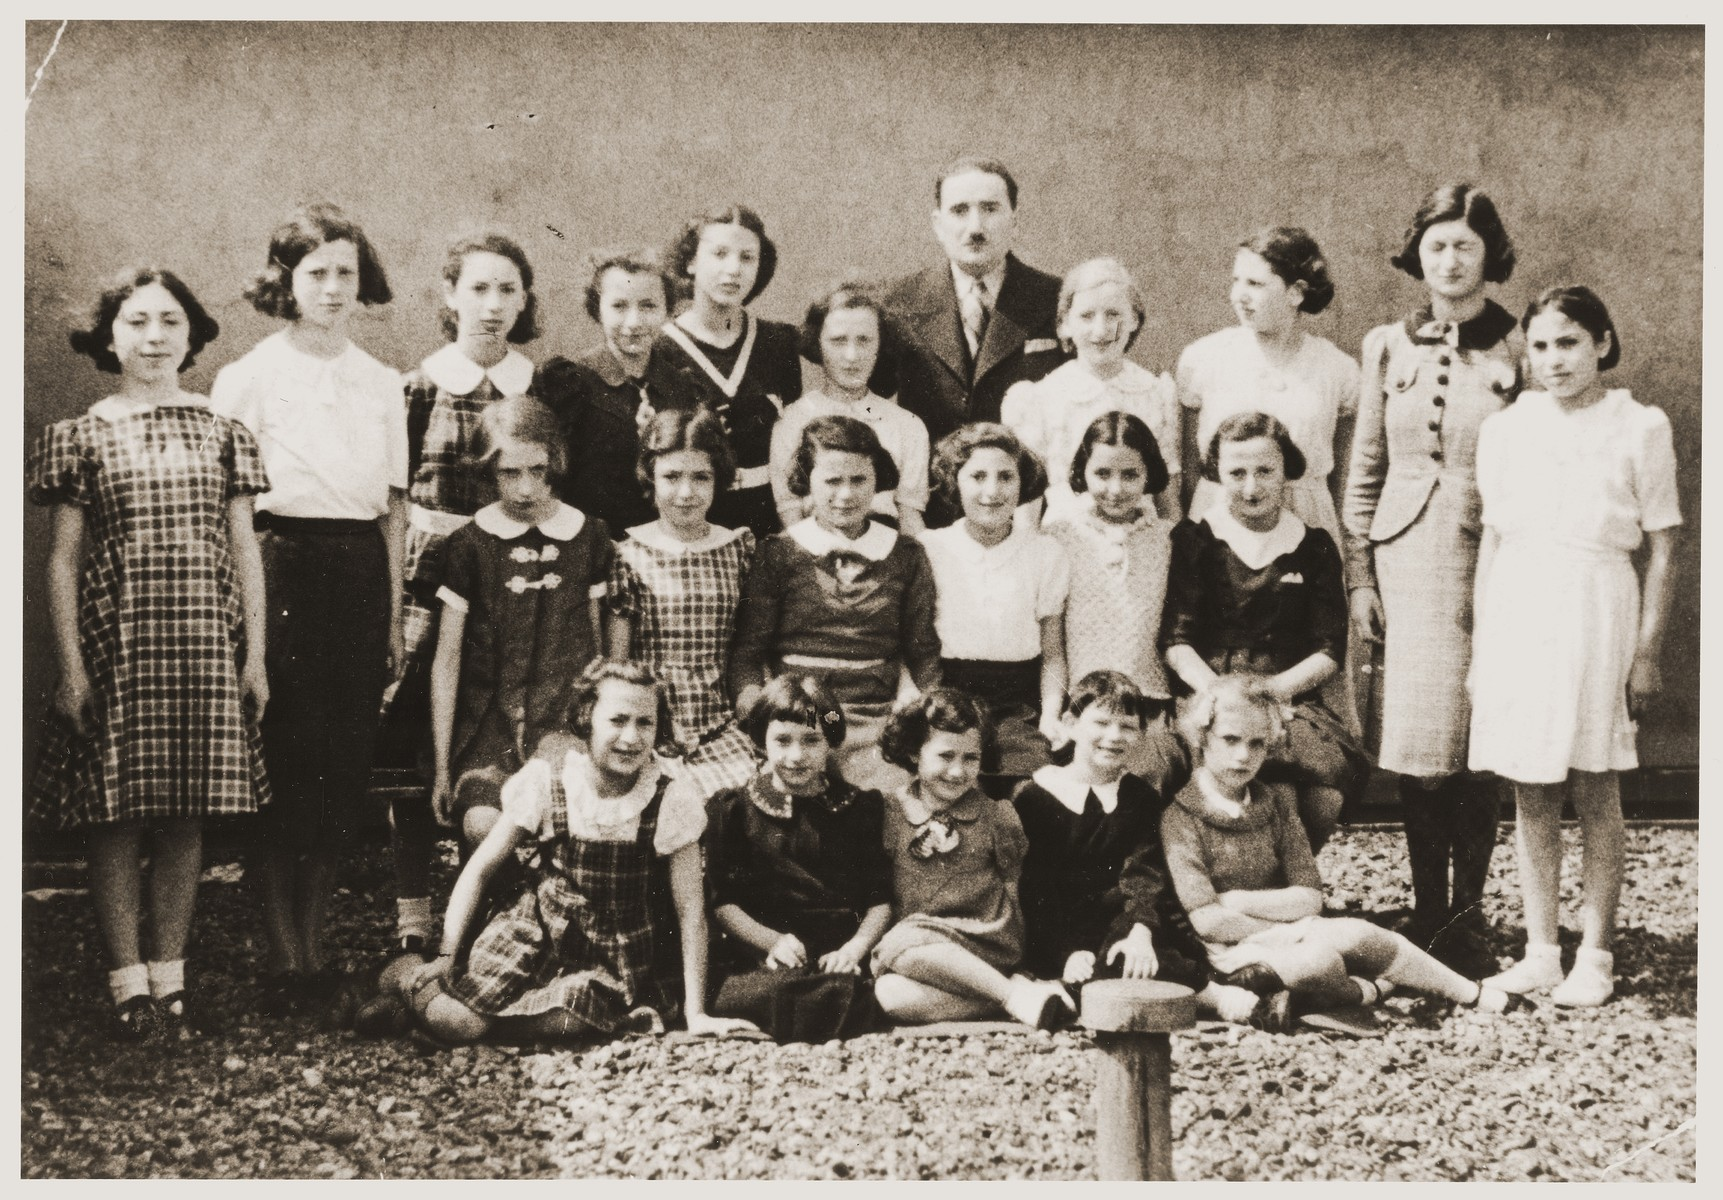 Group portrait of students and teachers from the Hebrew school at the Synagogue rue Clinique Anderlecht in Brussels, Belgium.  Among those pictured are Eva Tuchsznajder (front row, second from the left); Fanny Dickstein (second row, third from the left); Regina Grossman (back row, left); and Sarah Tuchsznajder (back row, third from the left).